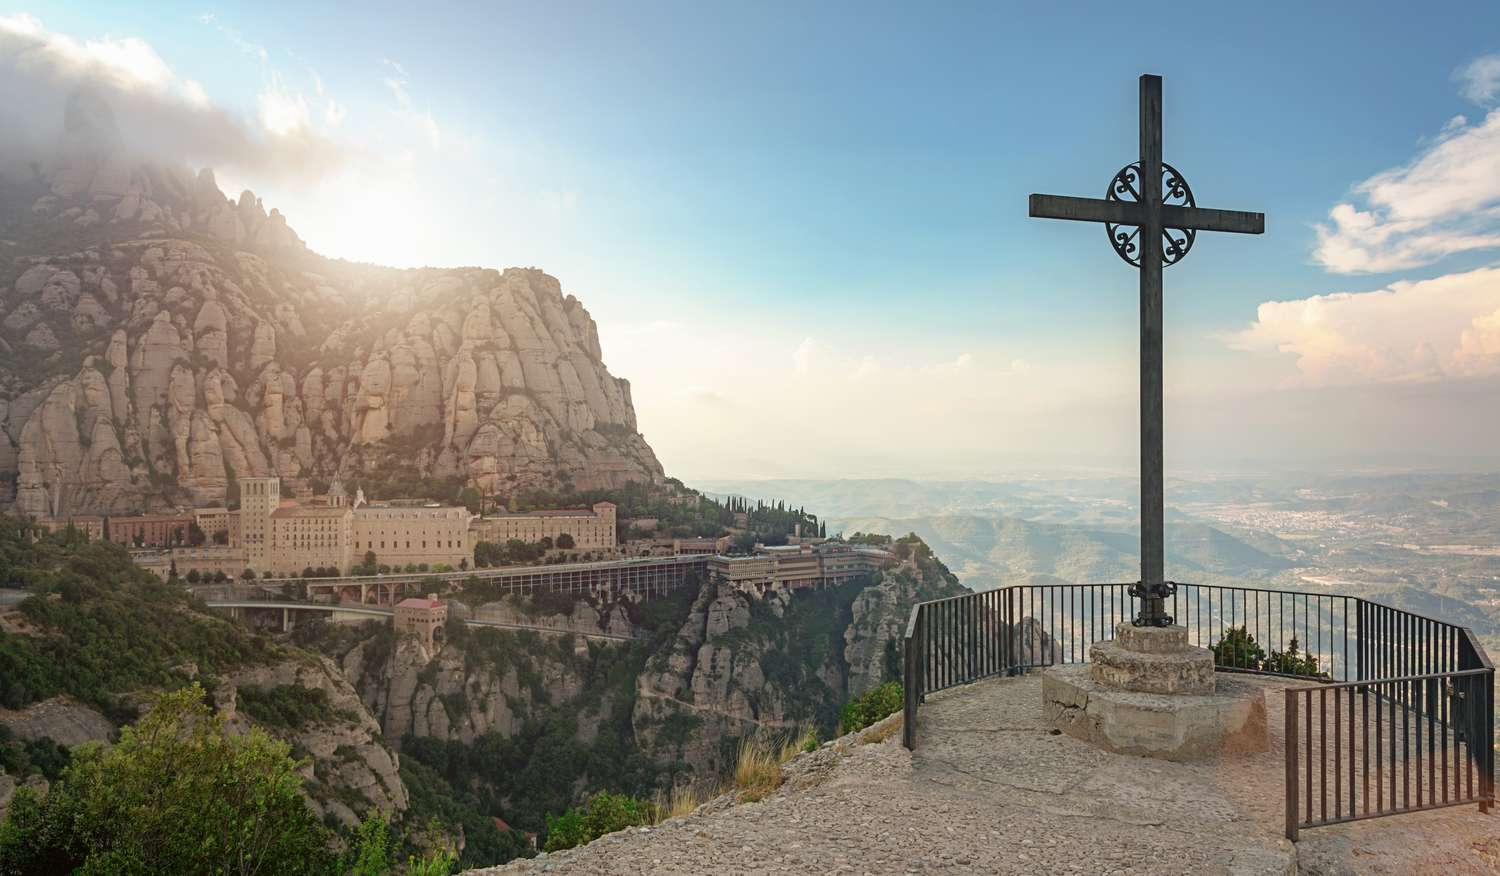 View of the Montserrat Monastery in the mountains near Barcelona.